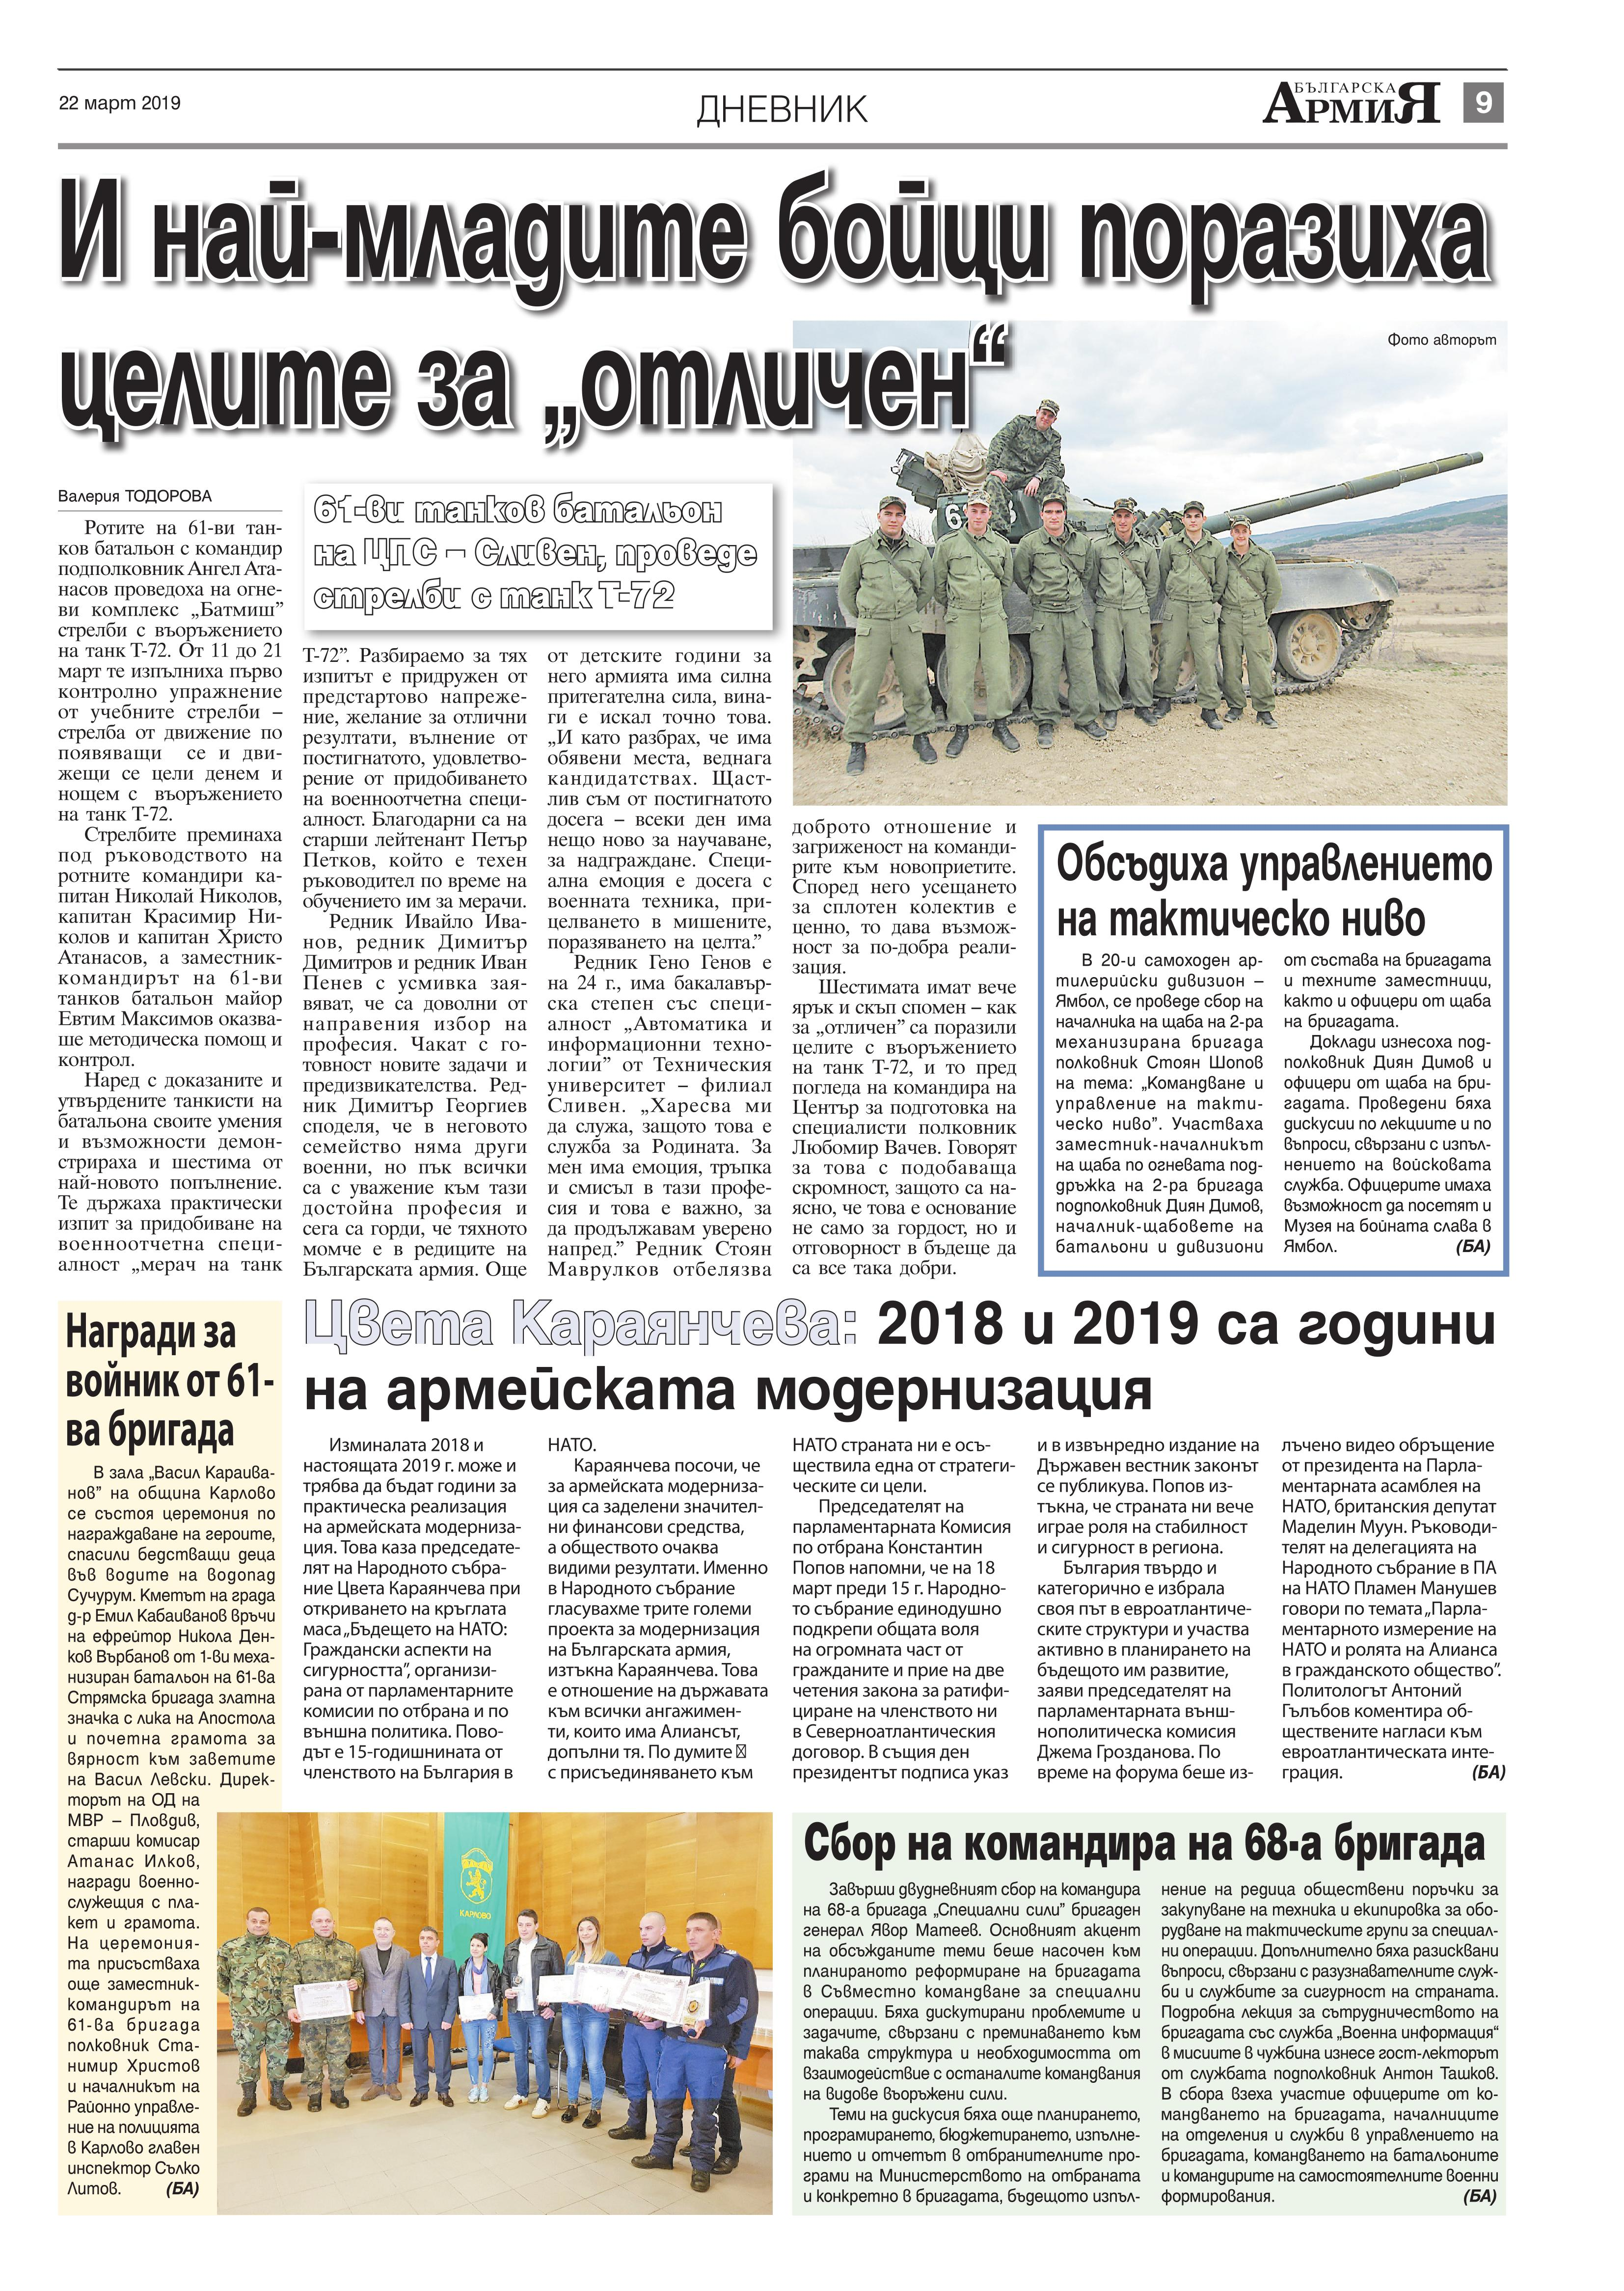 https://www.armymedia.bg/wp-content/uploads/2015/06/09.page1_-86.jpg